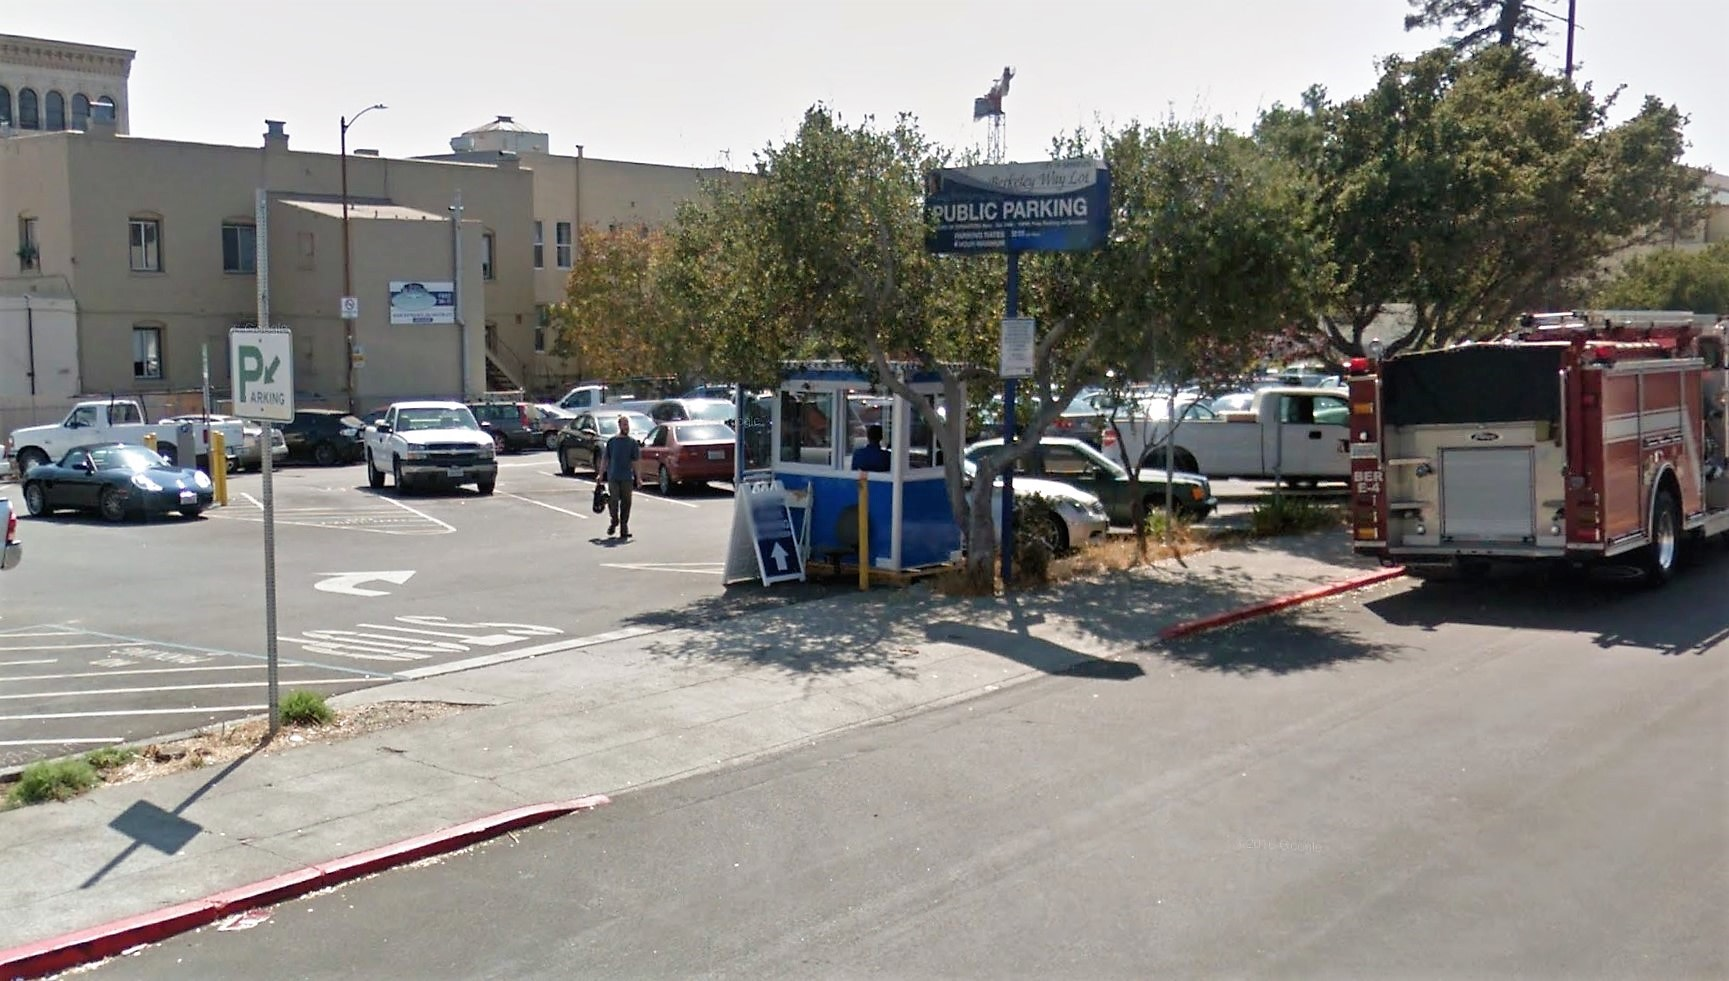 4x6 Parking Booth in Berkeley, CA in Parking Lot with Tinted Windows, Swing Door, Sliding Windows, and Breaker Panel Box